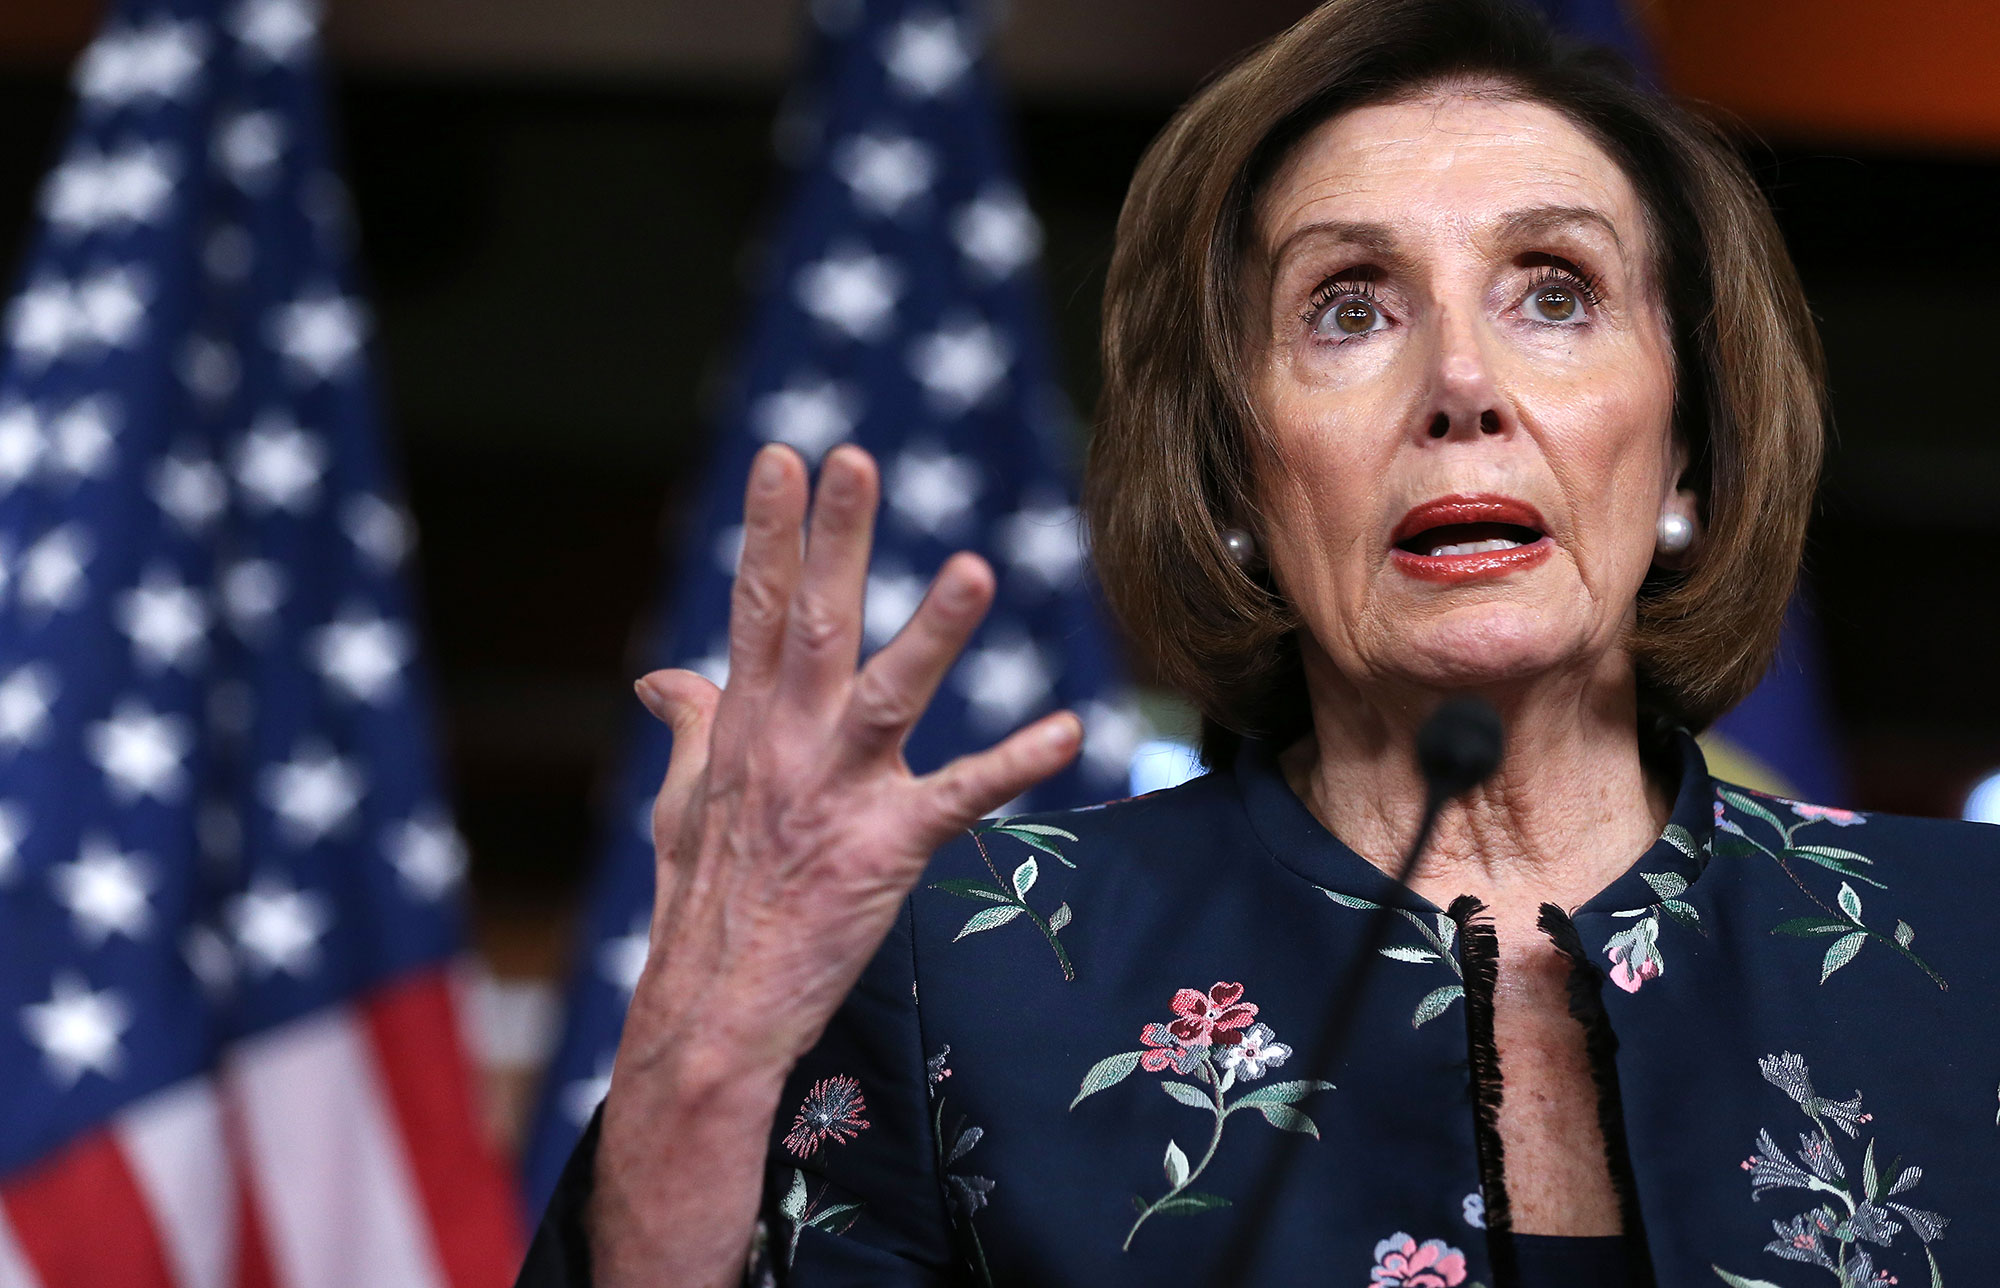 In this file photo, Nancy Pelosi speaks at her weekly press conference at the U.S. Capitol on January 30.